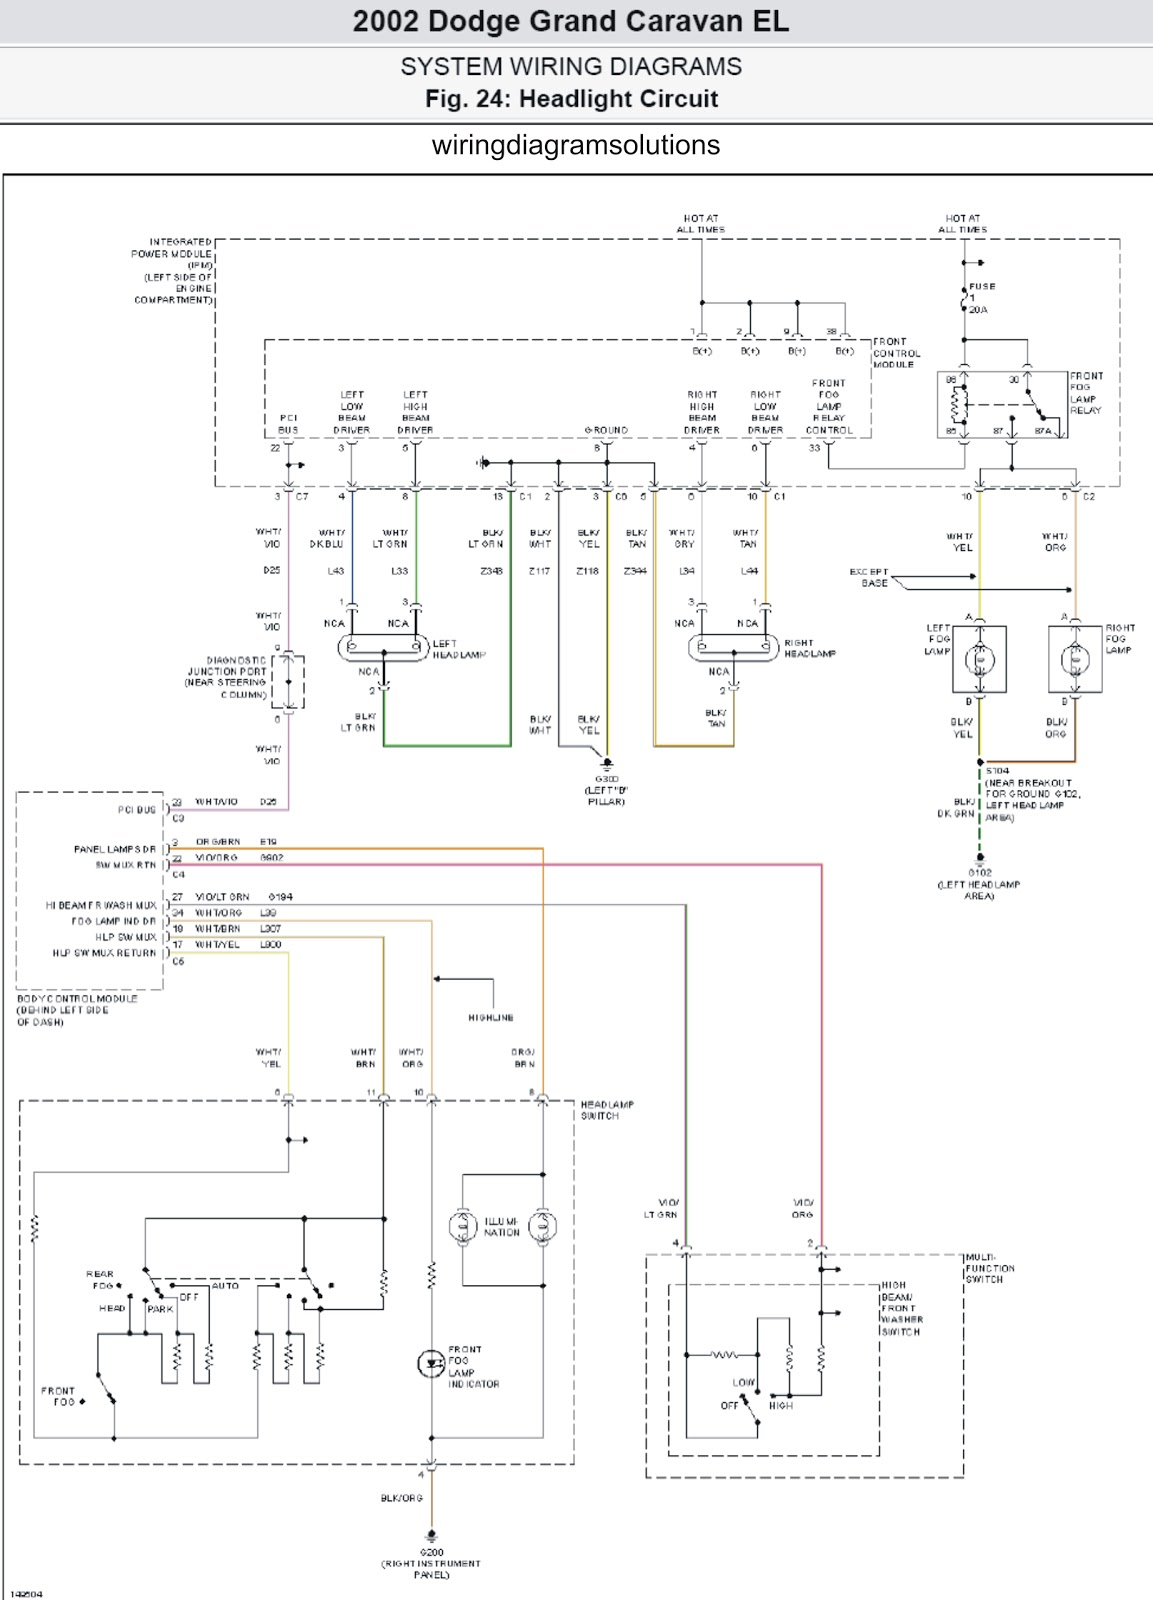 02 Dodge Caravan Wiring Diagram - 7.cotsamzp.timmarshall.info • on 2002 caravan cooling system, 2002 caravan fuel system, 2003 caravan wiring diagram, 2002 caravan radiator diagram, dodge wiring diagram, 2002 caravan rear suspension, 2002 caravan wiper motor, 2002 caravan parts, 2001 caravan wiring diagram,